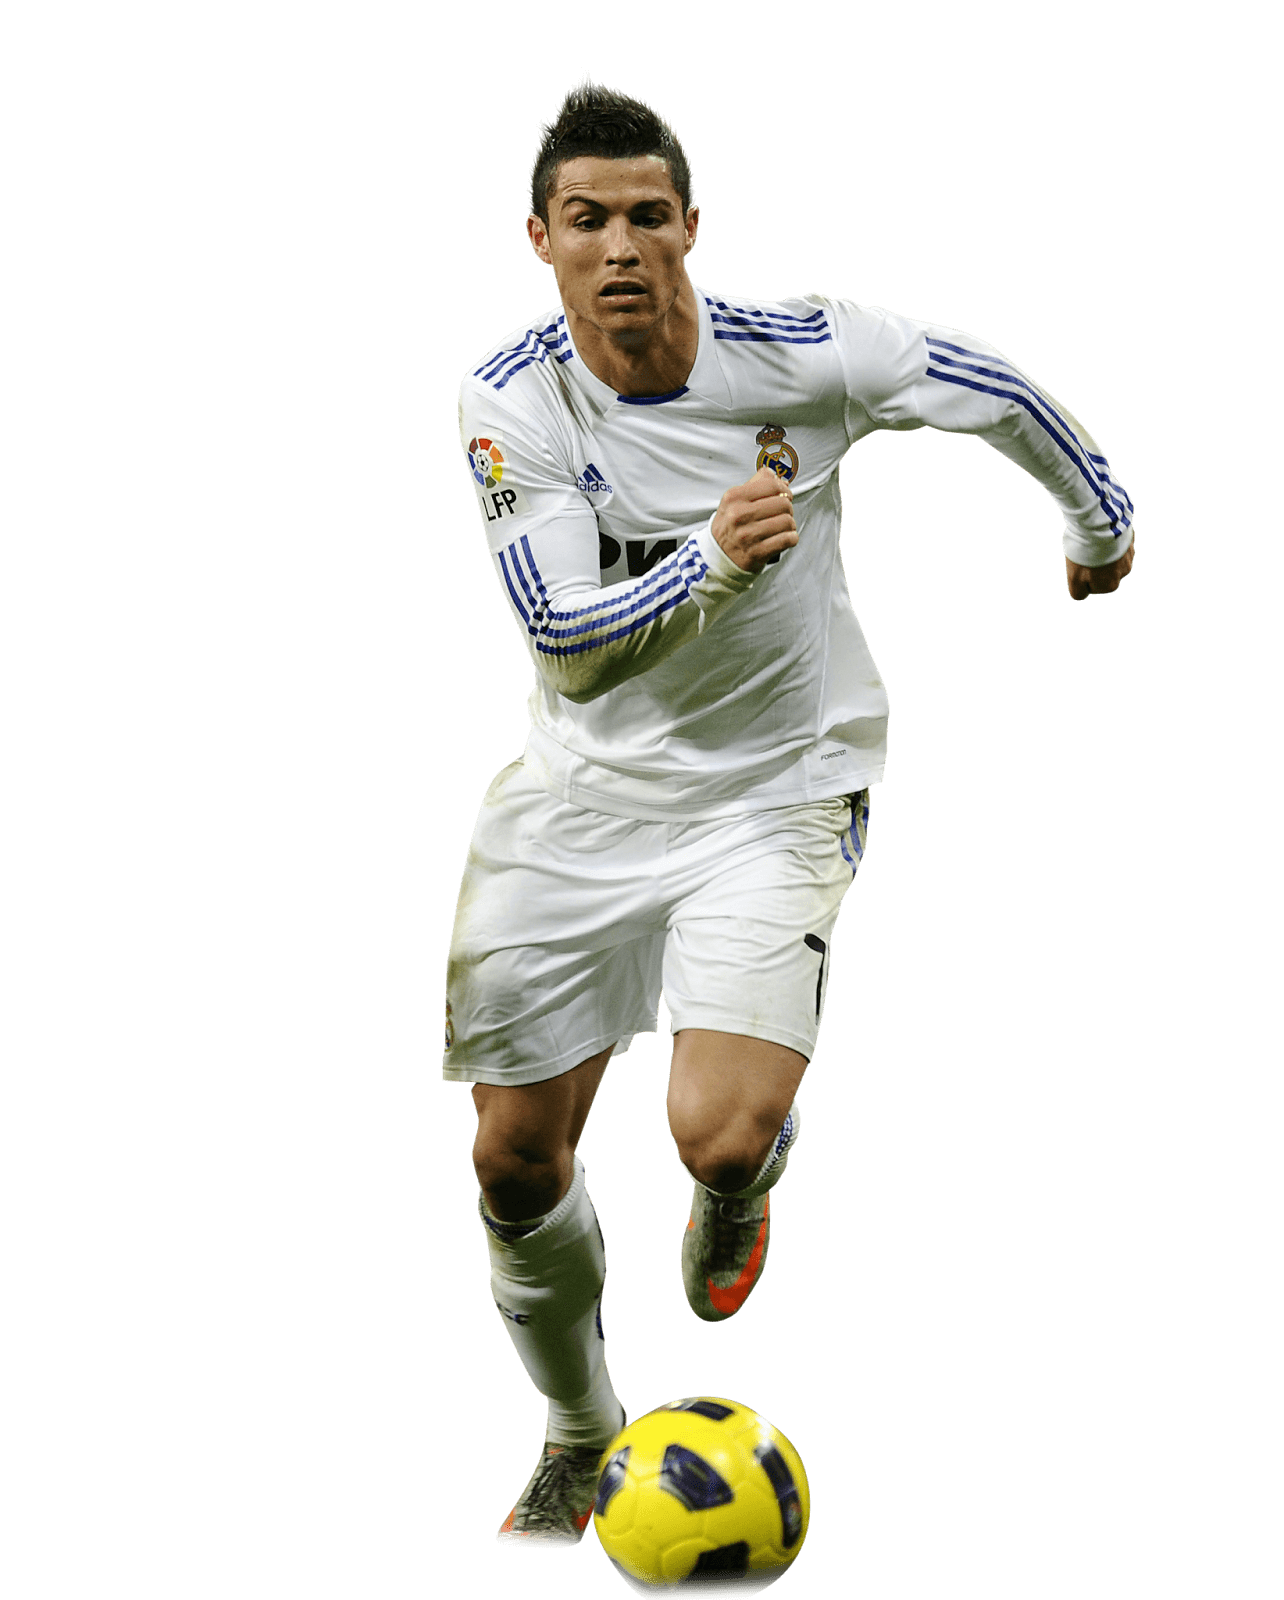 Ronaldo Transparent Png 2017 with ball